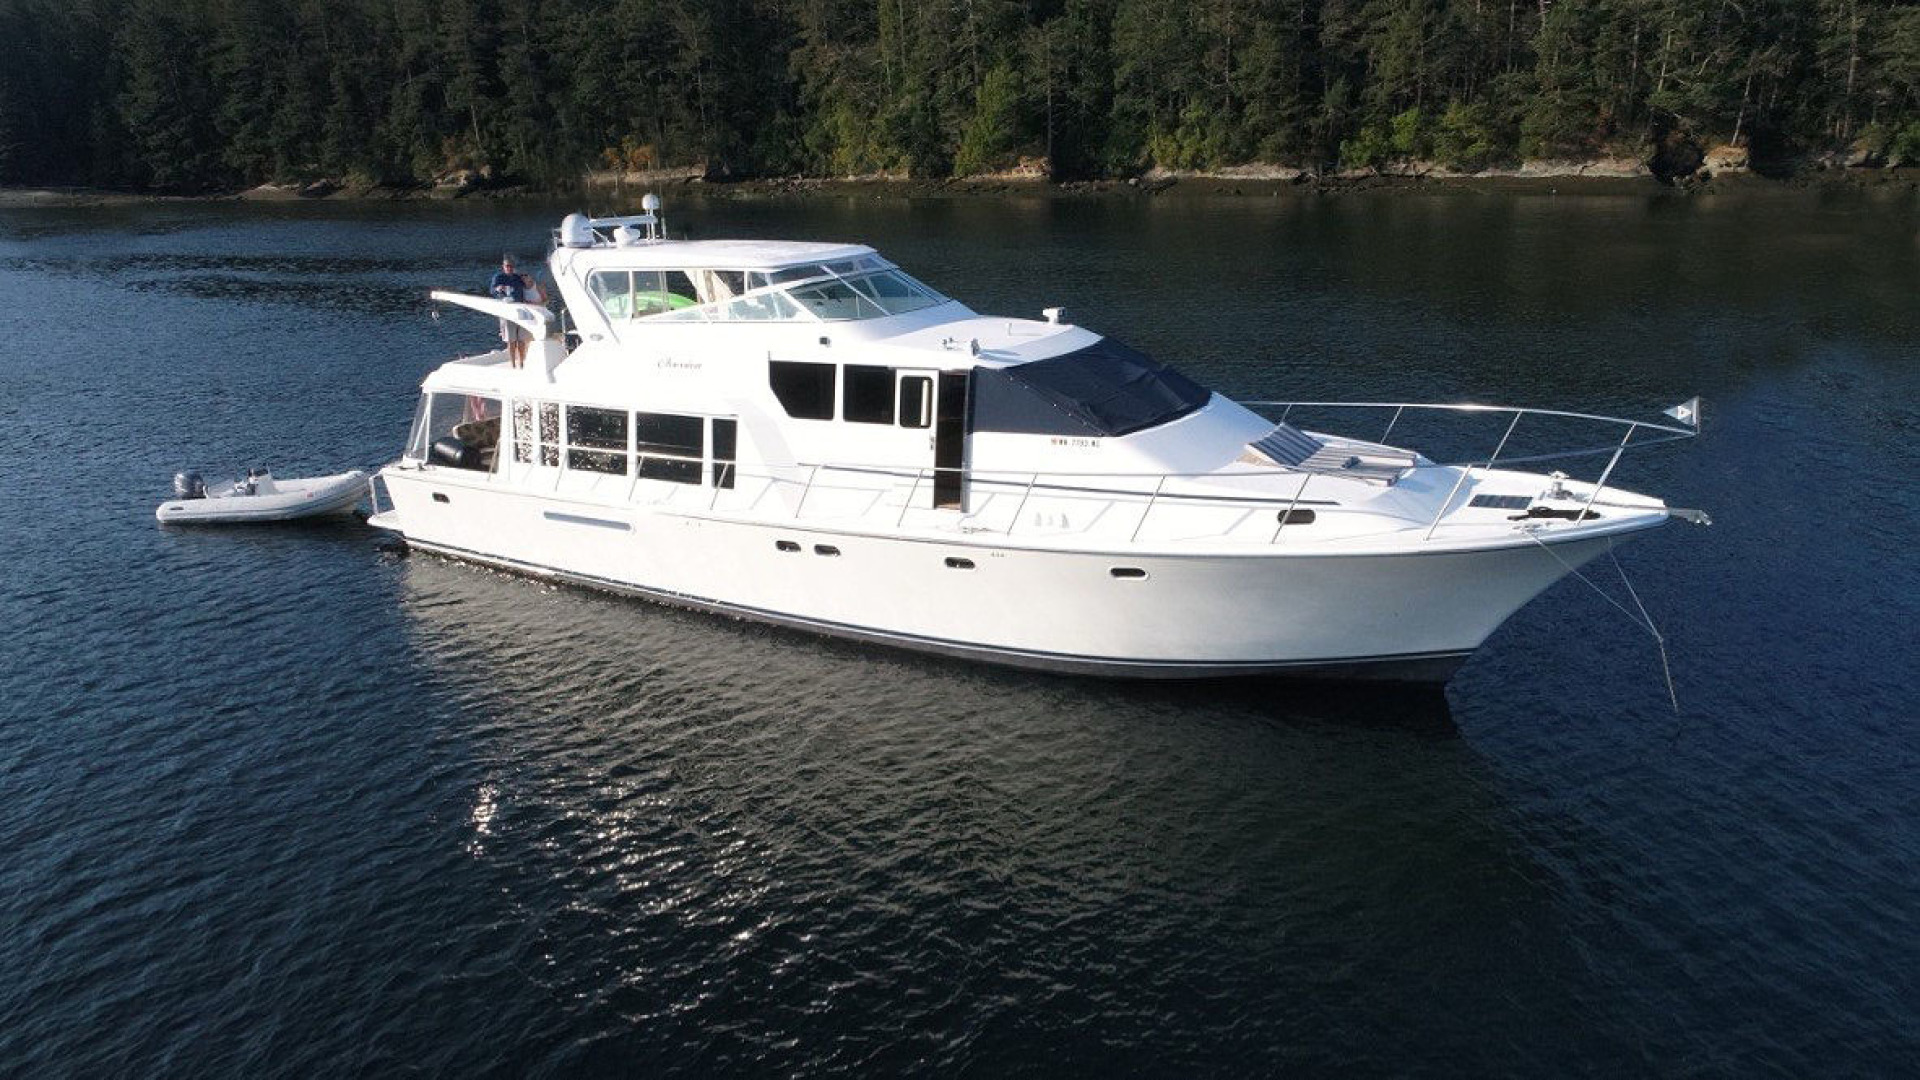 65' Pacific Mariner 1997 Pilothouse Obsession